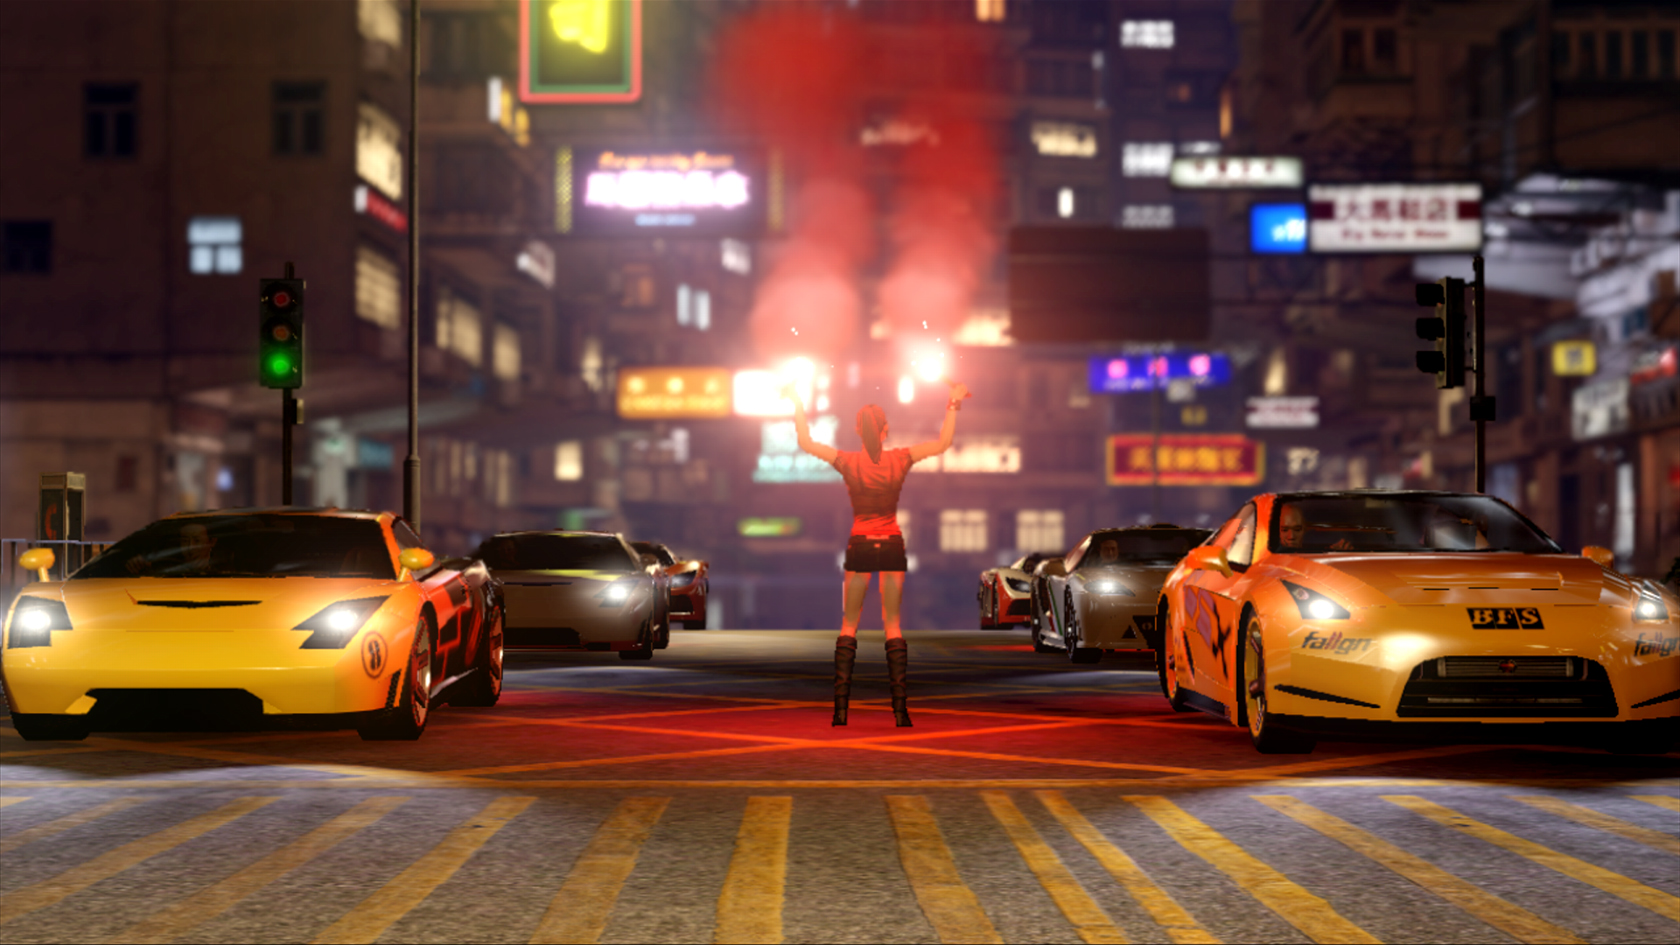 Ikea Corse New Sleeping Dogs Screenshots Show Cars Bikes And Explosion